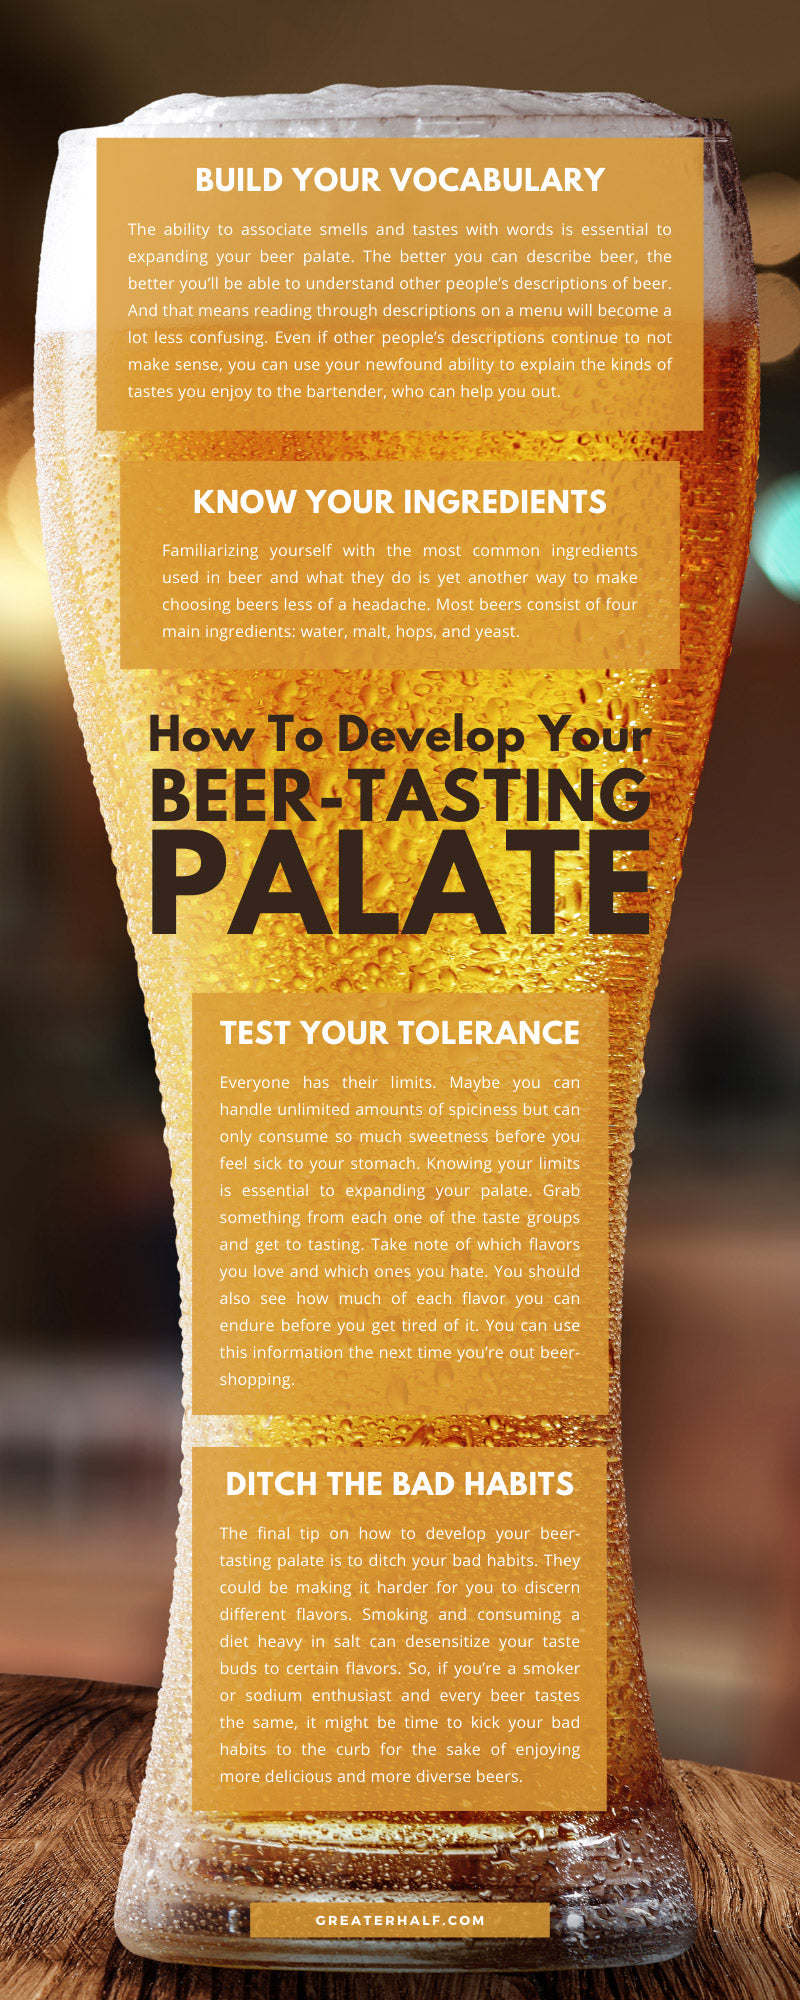 How To Develop Your Beer-Tasting Palate